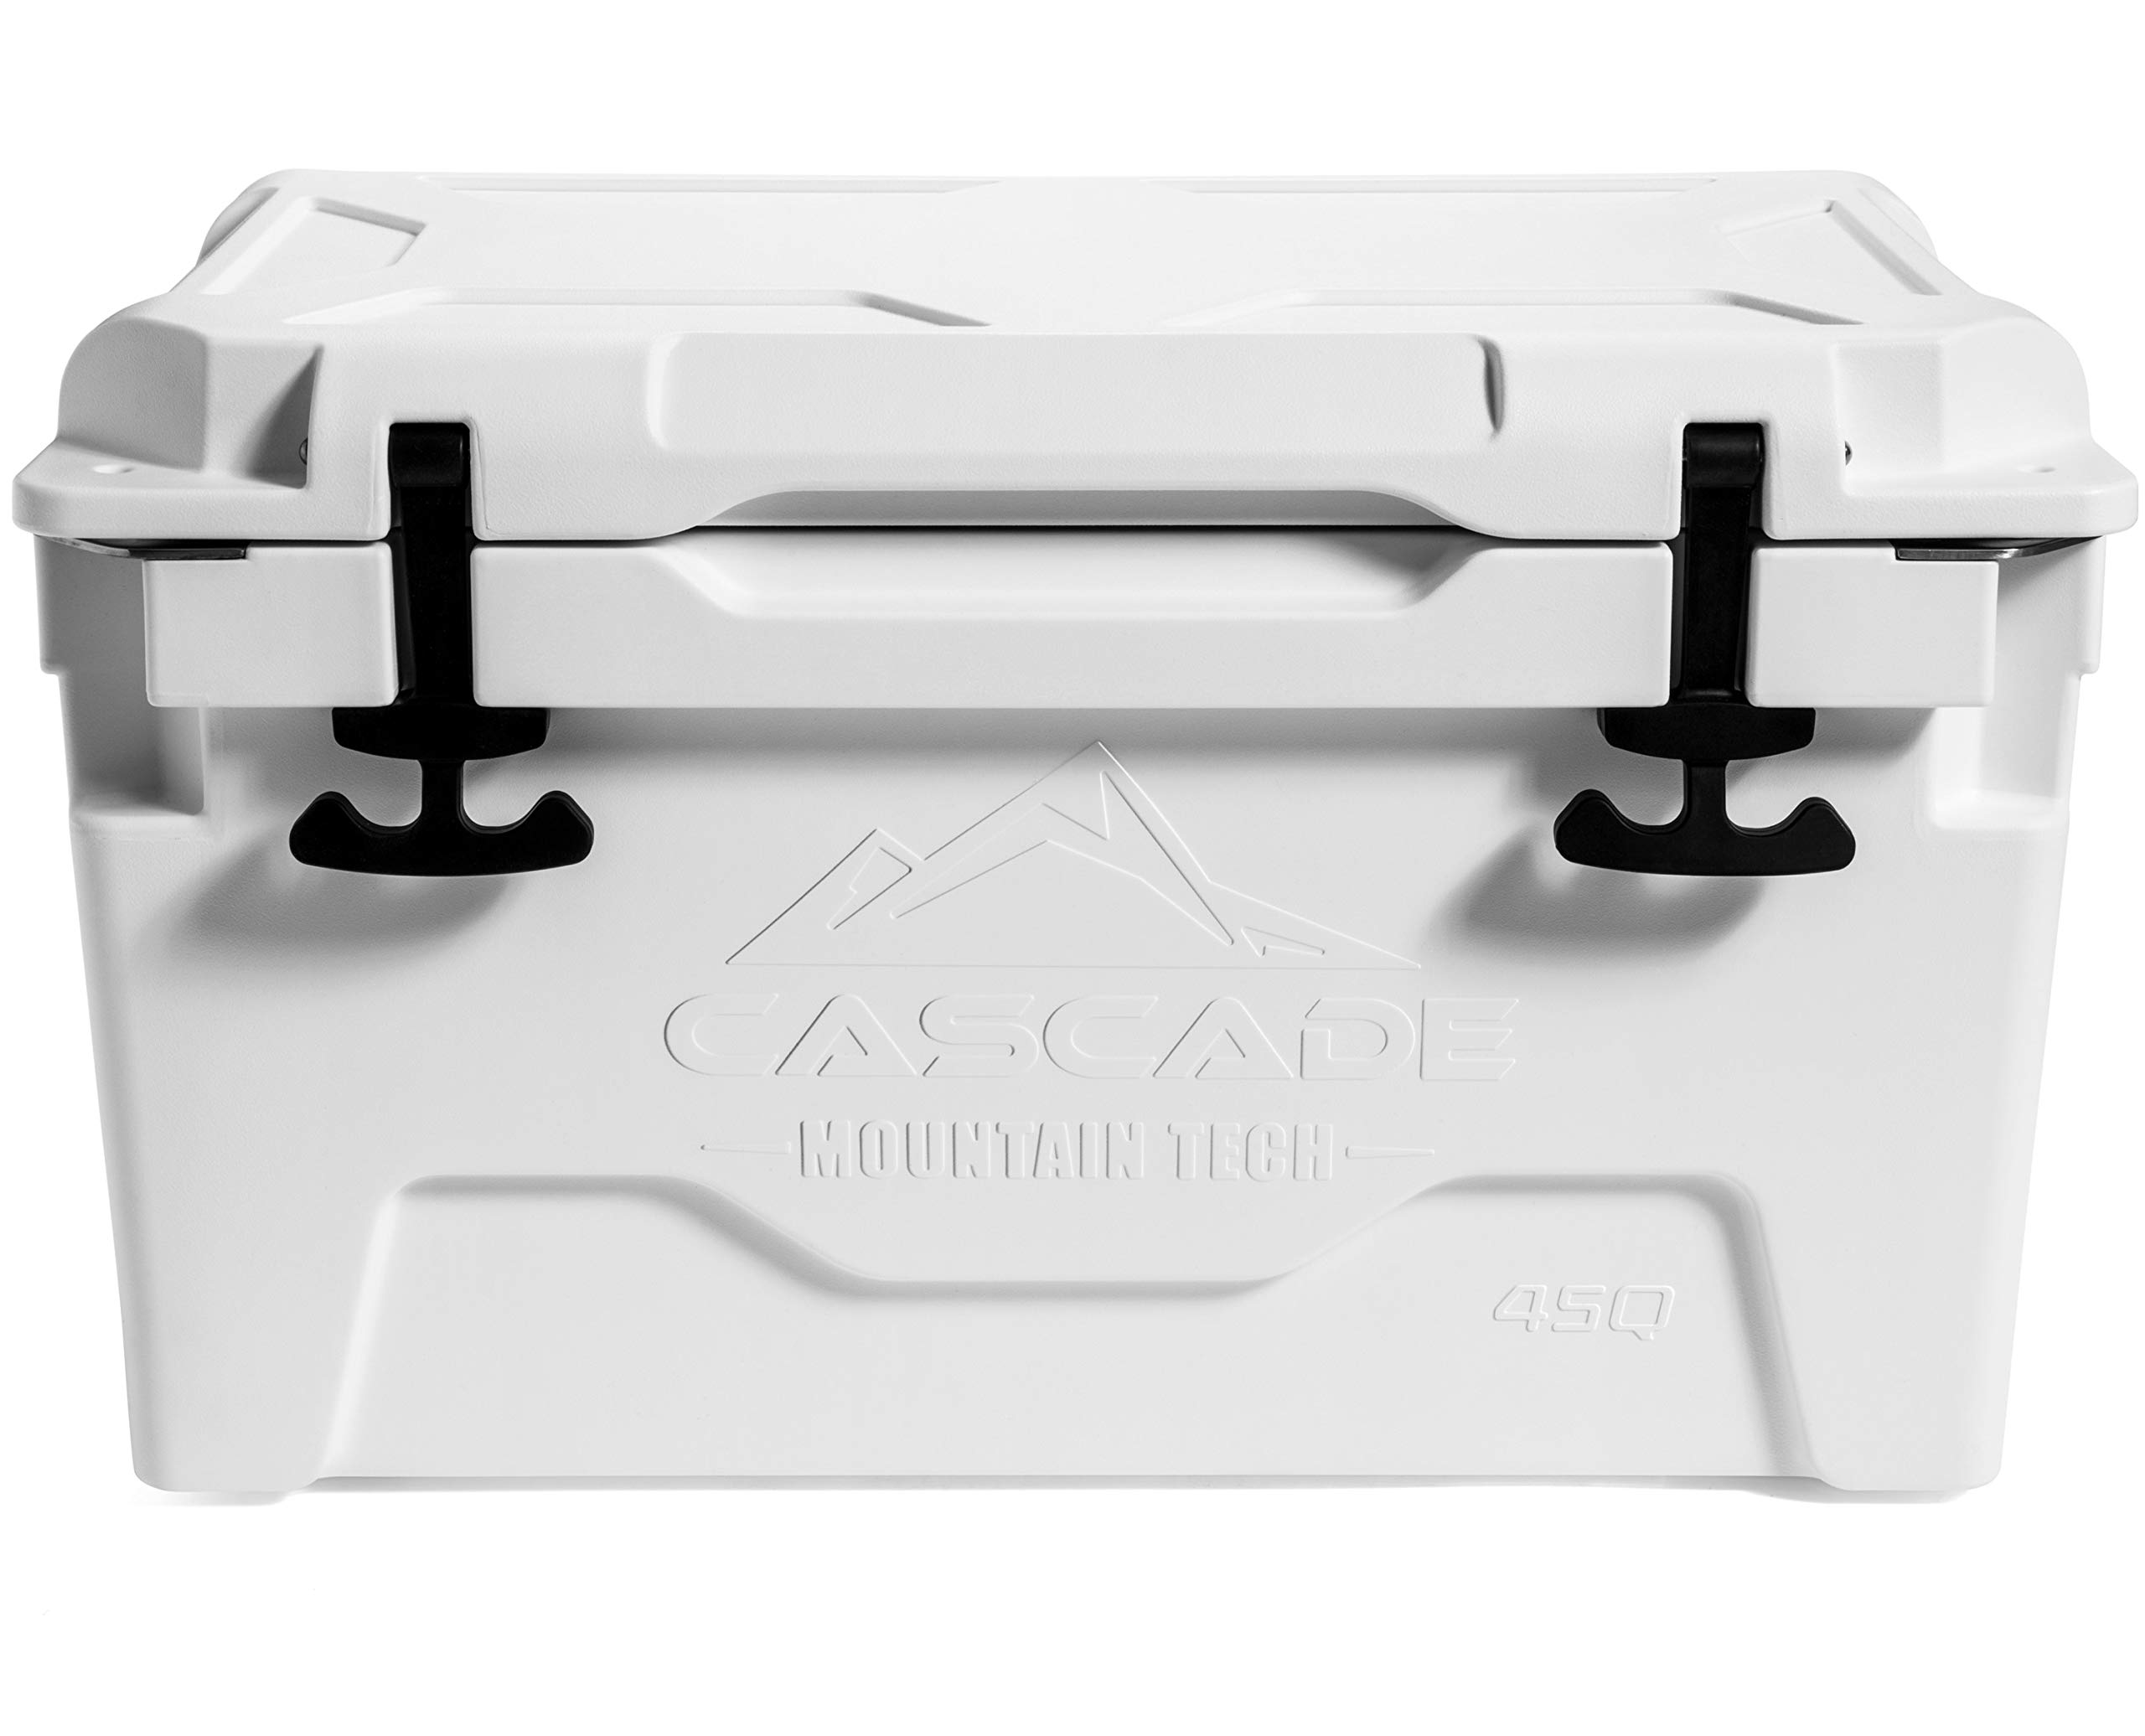 Cascade Mountain Tech Heavy- Duty Cooler Built-in Bottle Opener for Camping, BBQs, Tailgating & Outdoor Activities by Cascade Mountain Tech